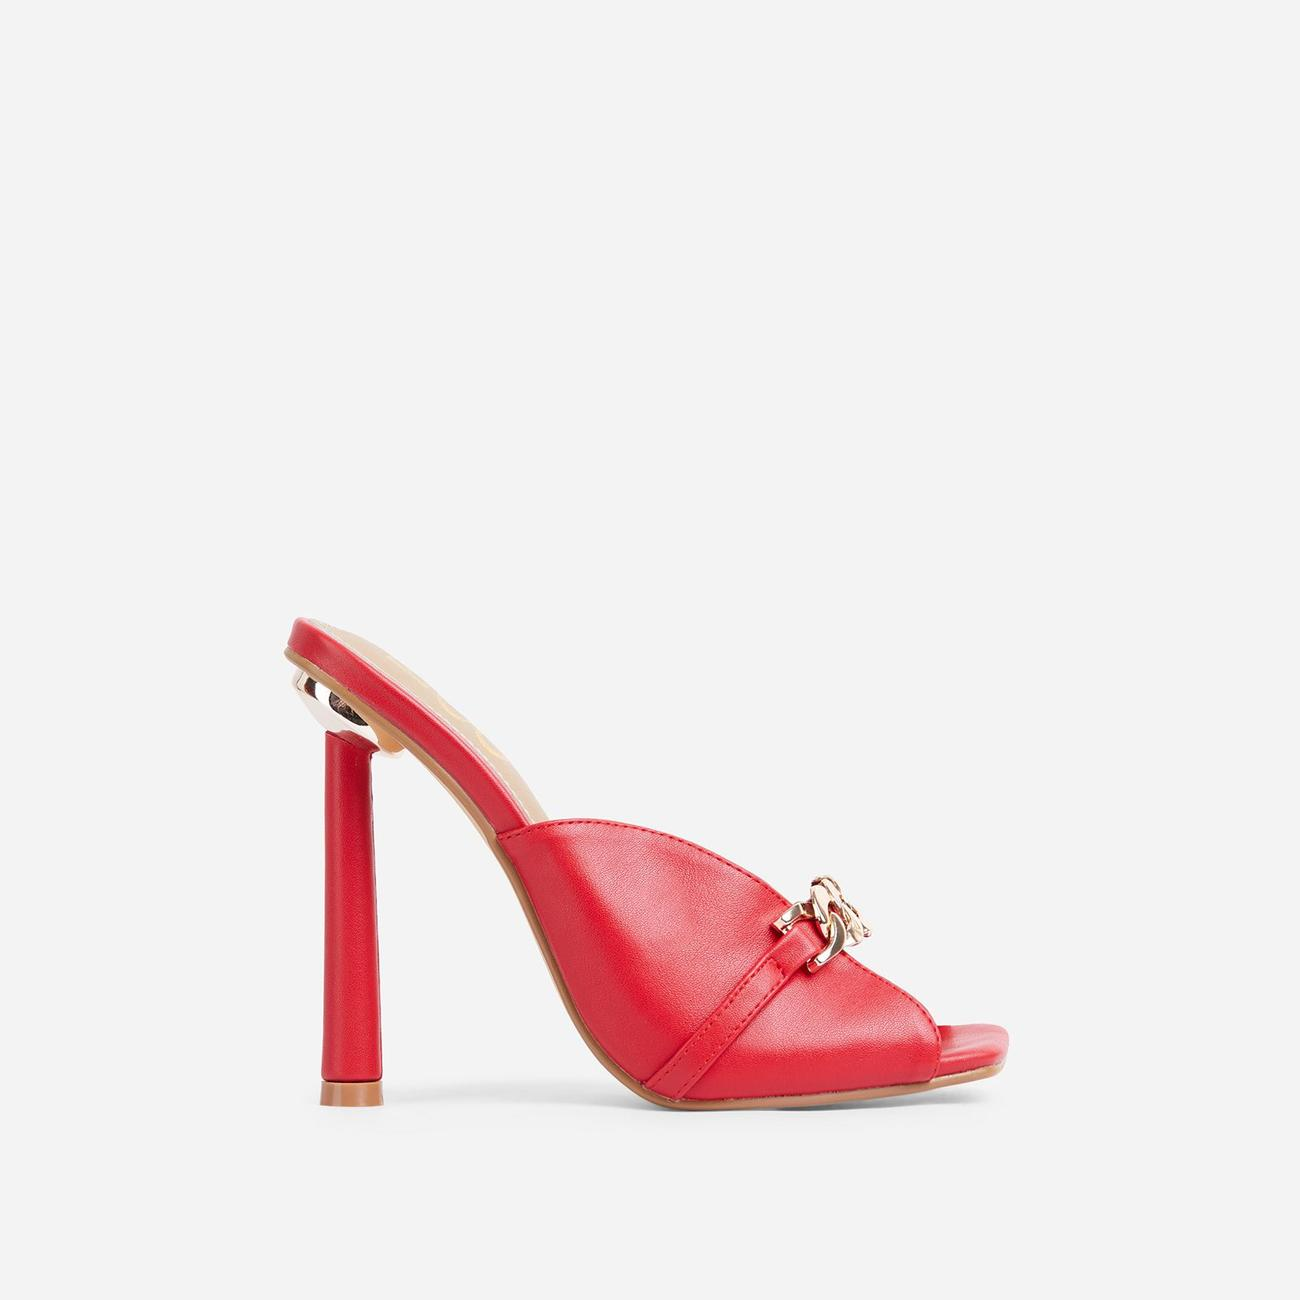 Gossip Chain Detail Square Peep Toe Heel Mule In Red Faux Leather Image 1